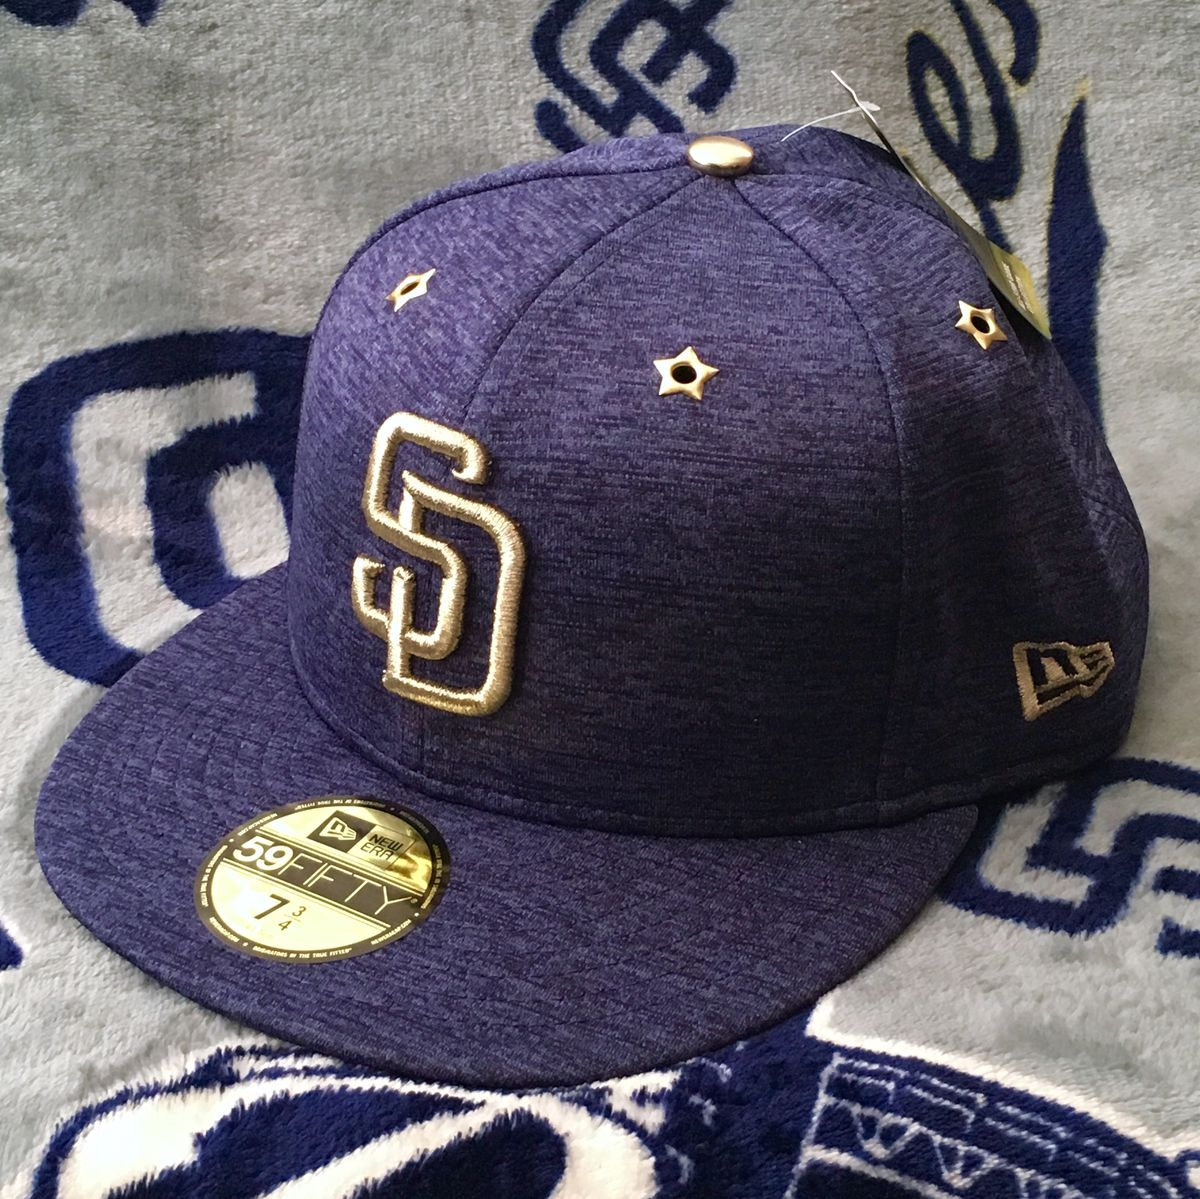 76ffc7dbfd087a ... special cap in the past couple years. This year's look is sort of a  continuation of last year's look when the ASG was held in beautiful Petco  Park.